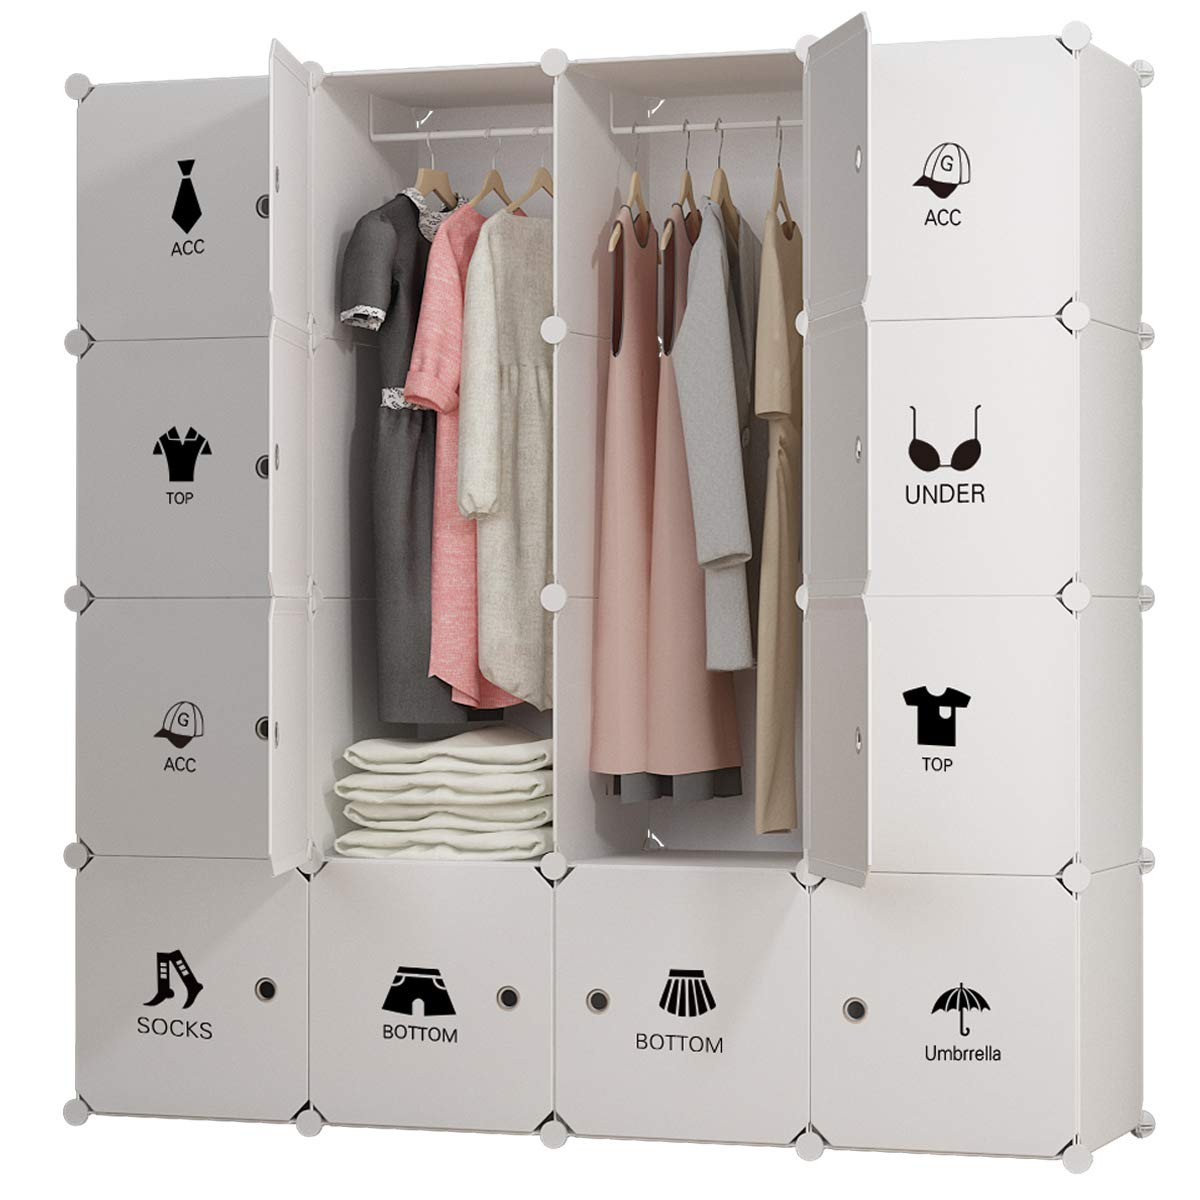 KOUSI Portable Clothes Closet Wardrobe Bedroom Armoire Dresser Cube Storage Organizer, Capacious & Customizable, White, 10 Cubes&2 Hanging Sections xm022-003